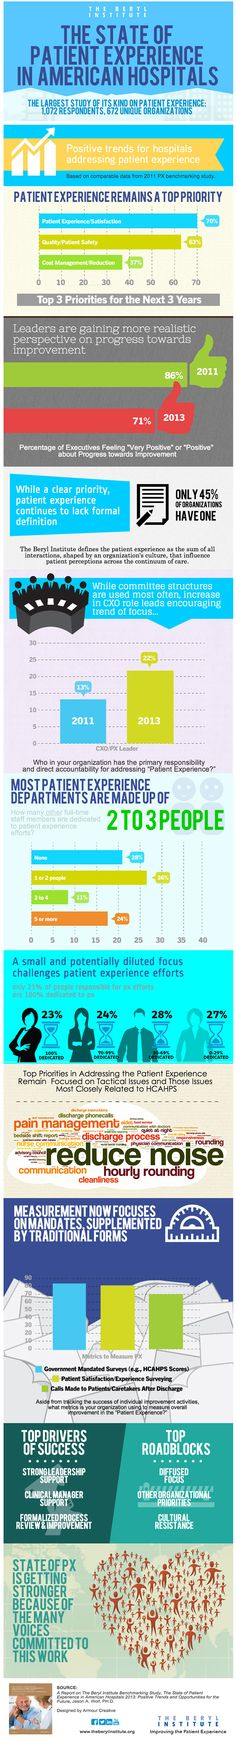 The Beryl Institute released a new report, The State of Patient Experience, which reveals the complex reality facing the patient experience movement. The trends are positive, with a continued increase in focus on defining and supporting patient experience efforts. Yet healthcare leaders are only cautiously optimistic about the impact of their efforts